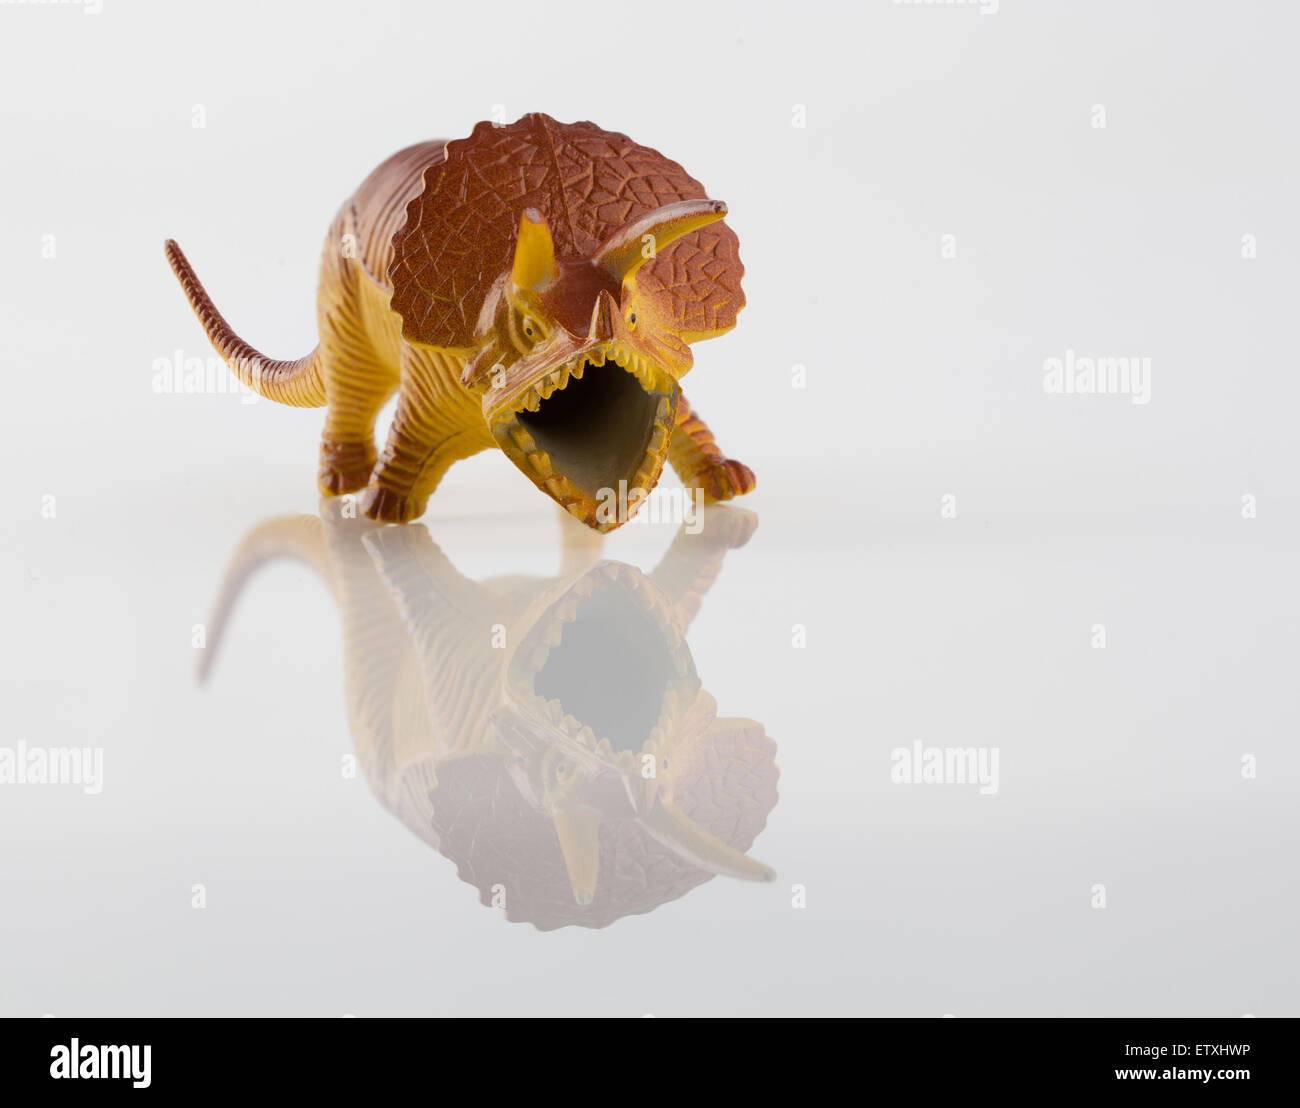 Yellow angry dinosaur toy isolated on white - Stock Image